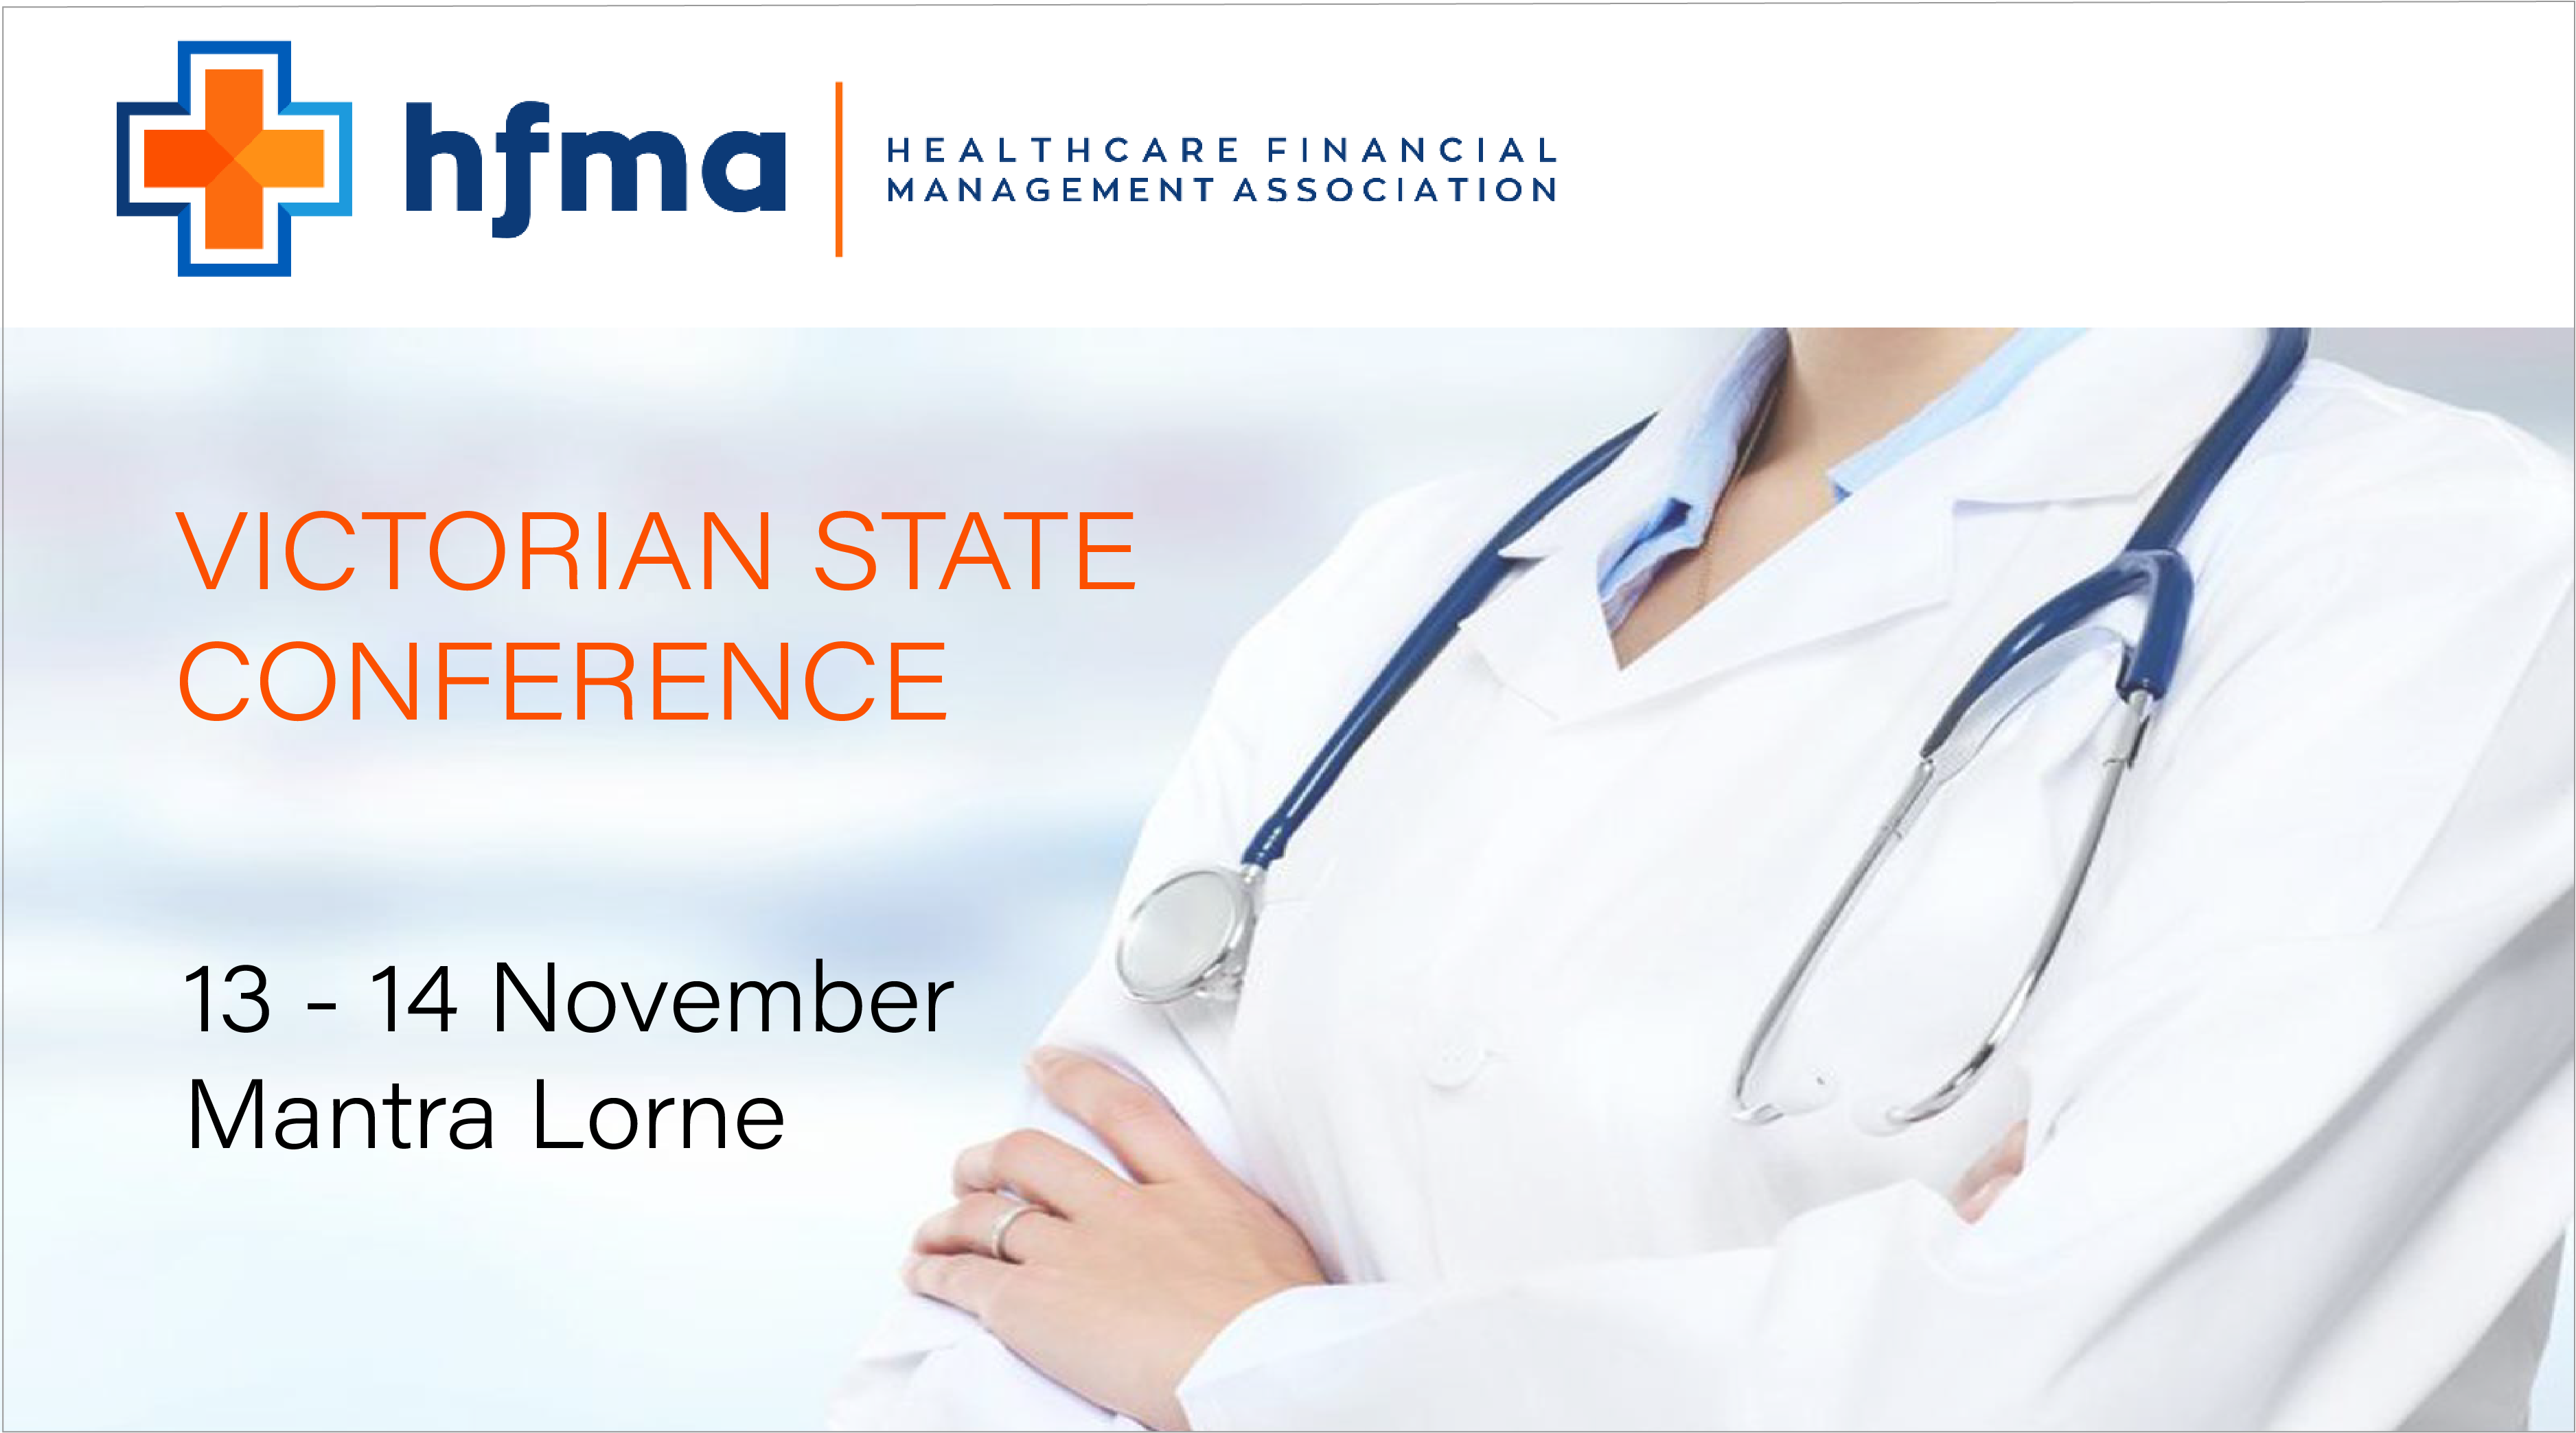 2019 HFMA Annual Victorian State Conference